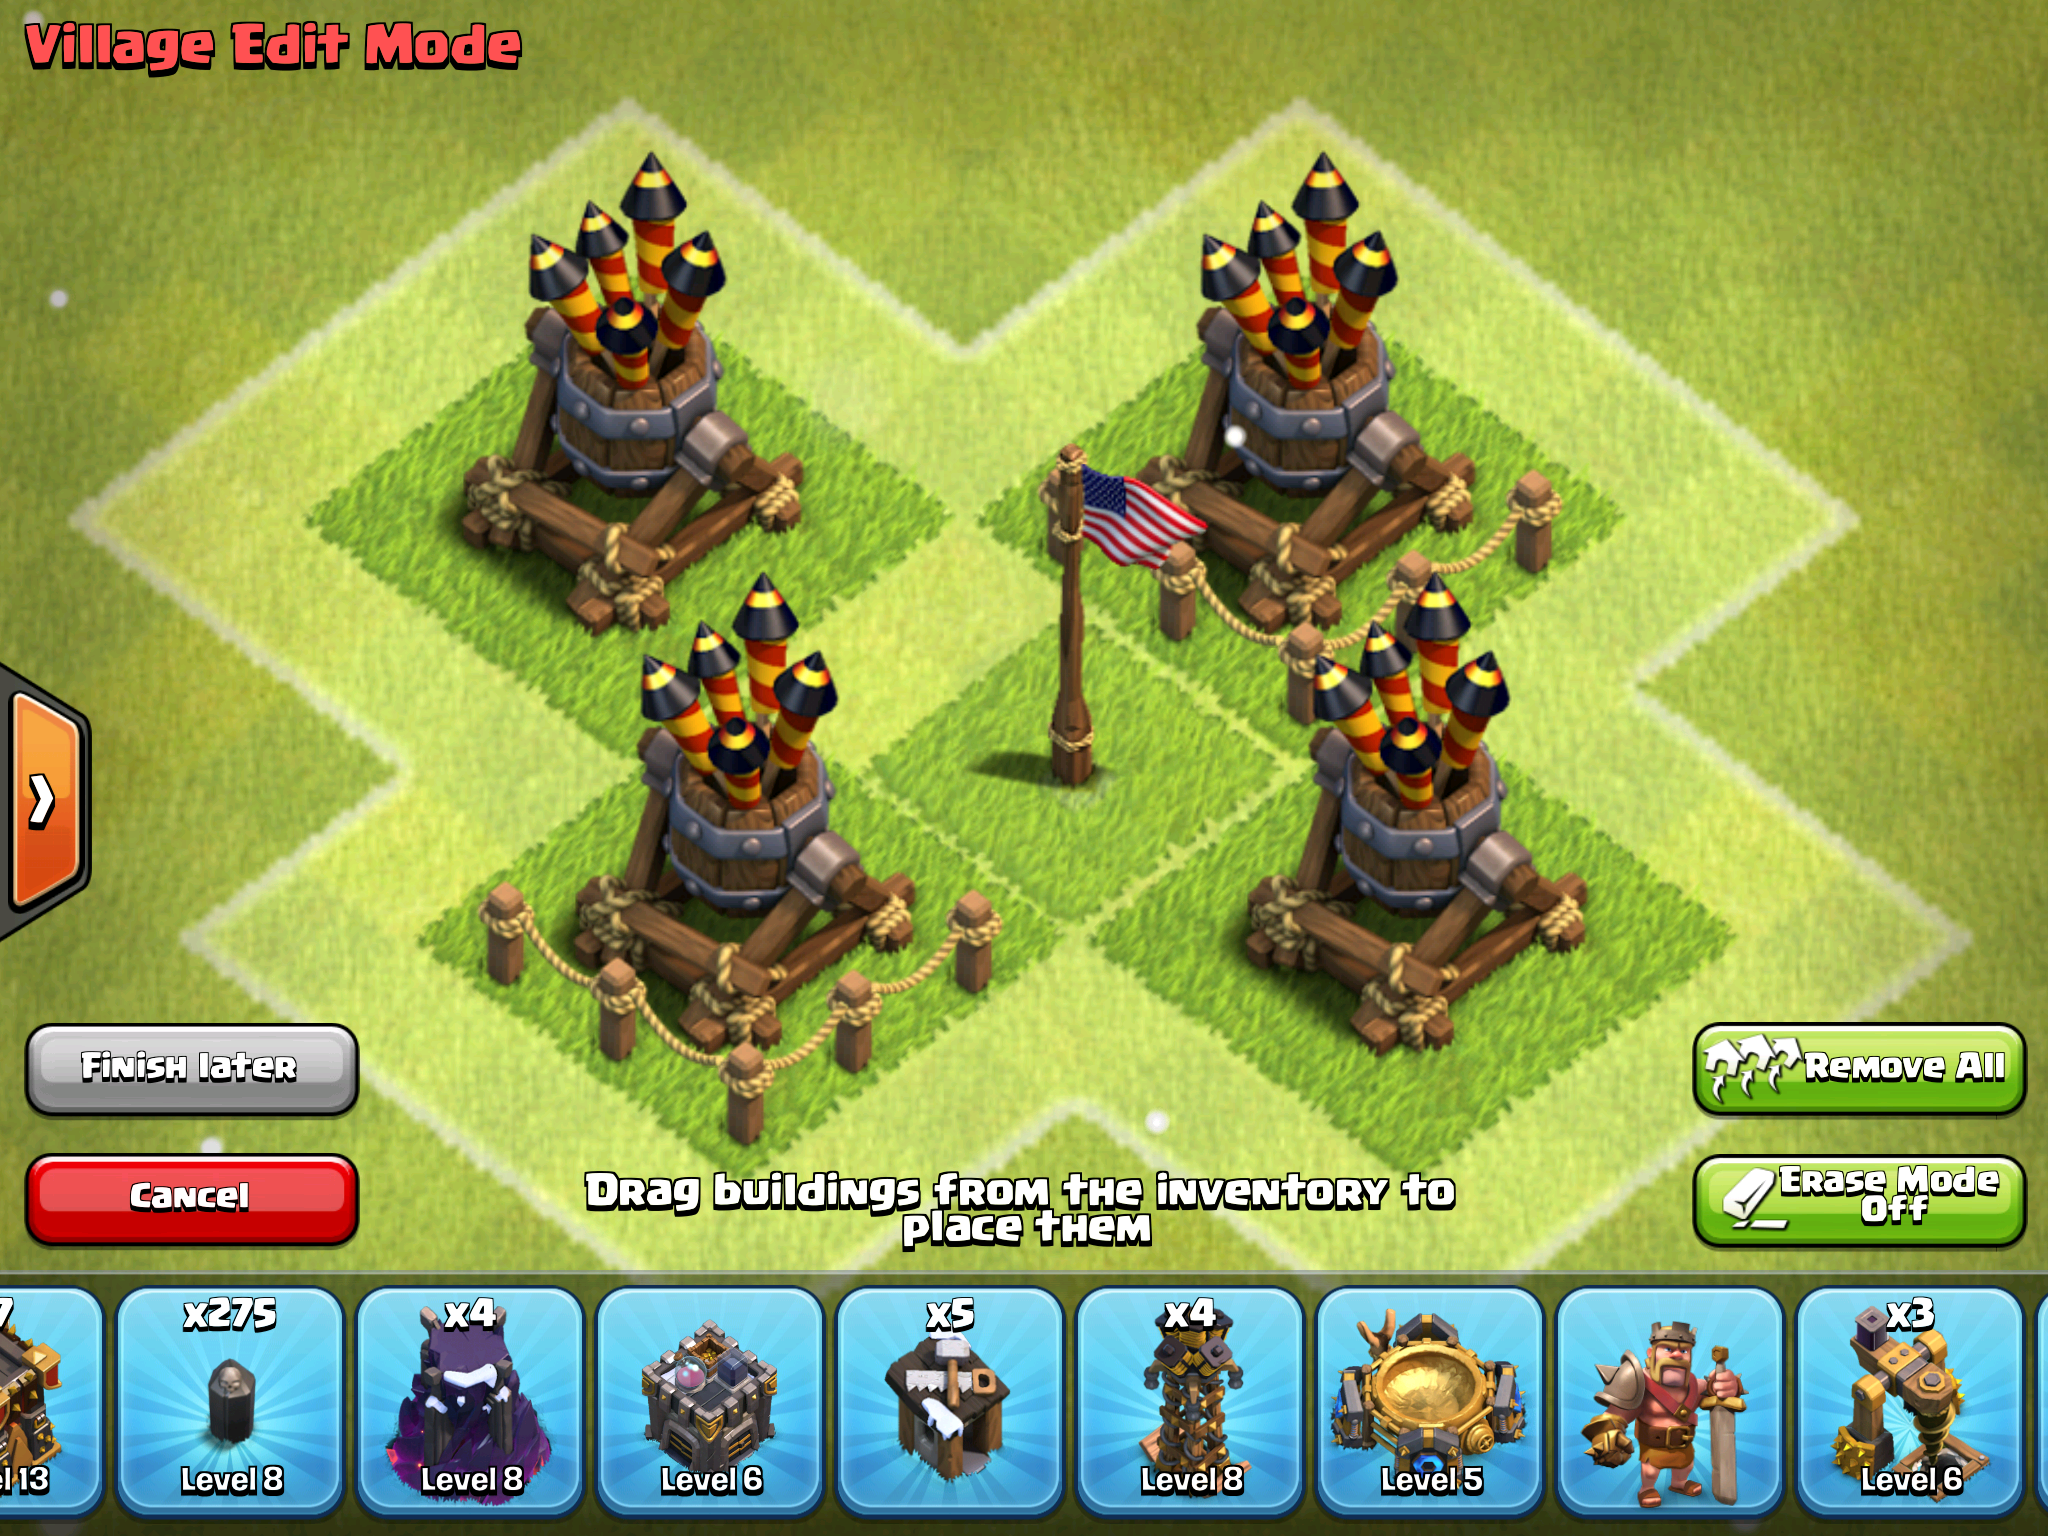 Clash of Clans Air Defense - Stats and Strategies